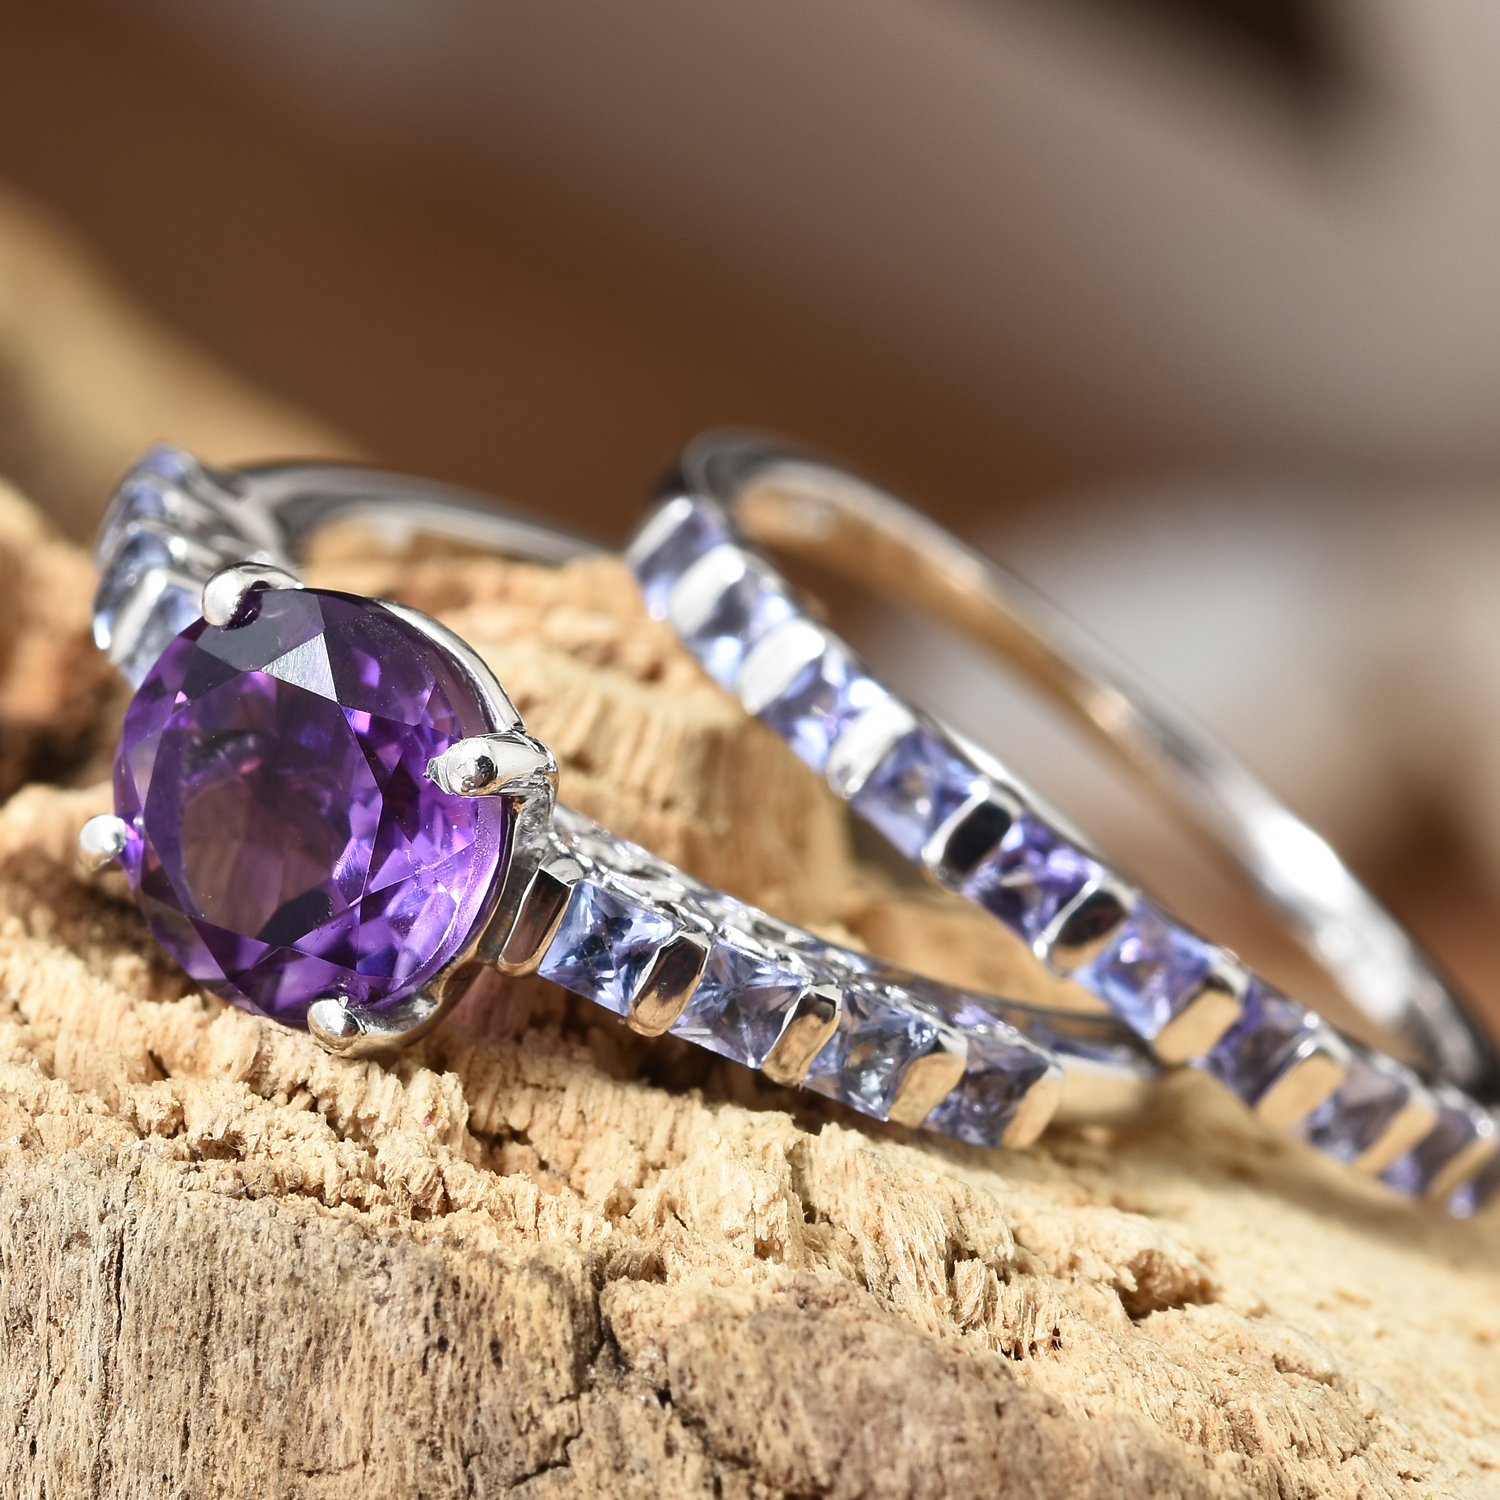 Moroccan amethyst ring set displayed on wooden stand.